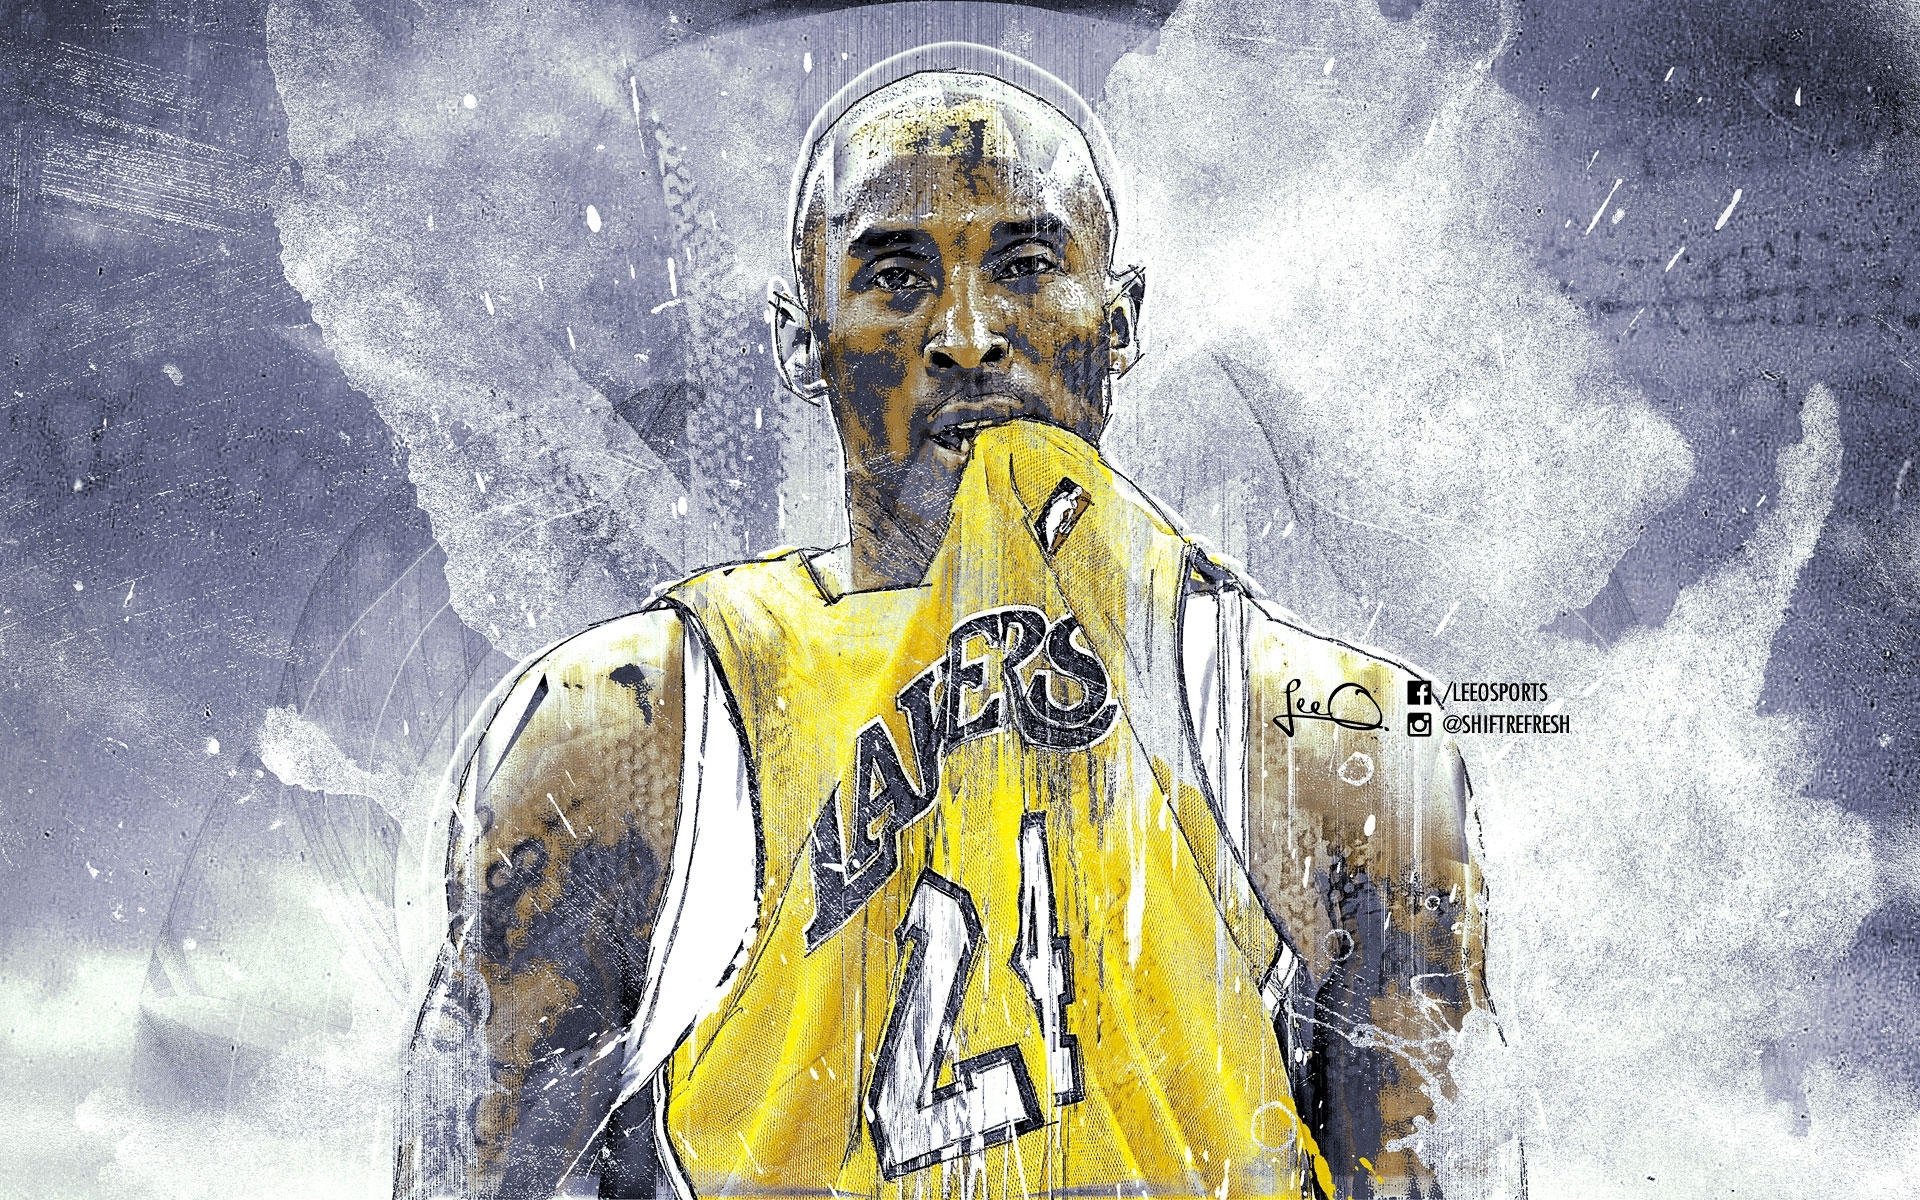 dark kobe bryant wallpaper man simple white decoration ideas water